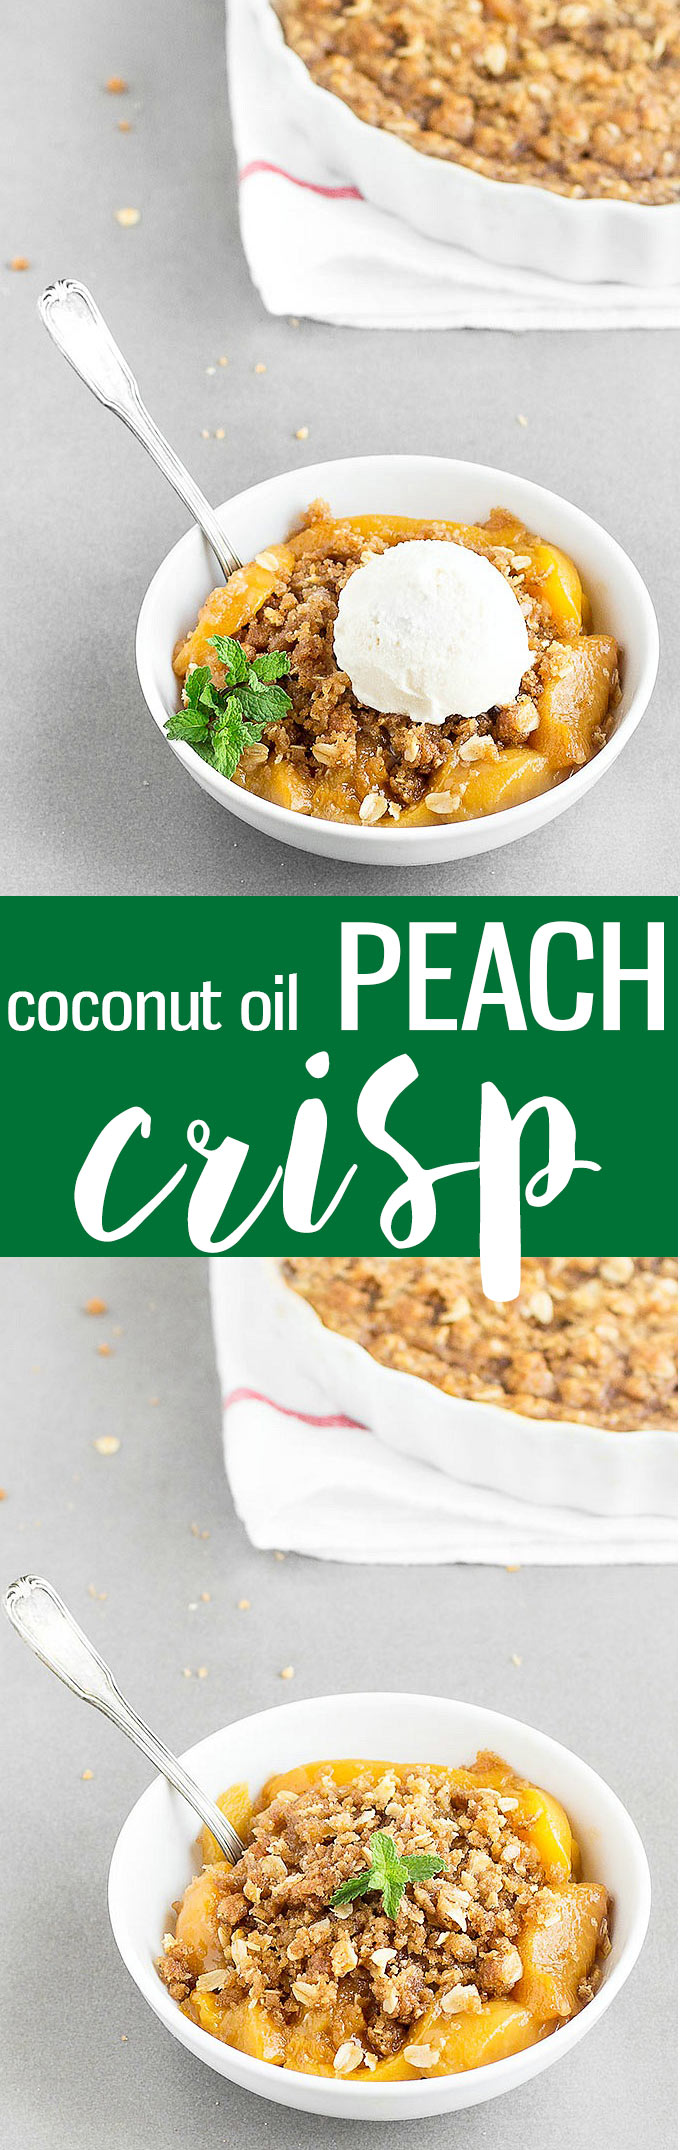 Coconut Oil Peach Crisp - A simple and delicious summer dessert with fresh, juicy peaches and a crunchy crumbled topping.  Perfect with a scoop of vanilla ice cream or a dollop of whipped cream!